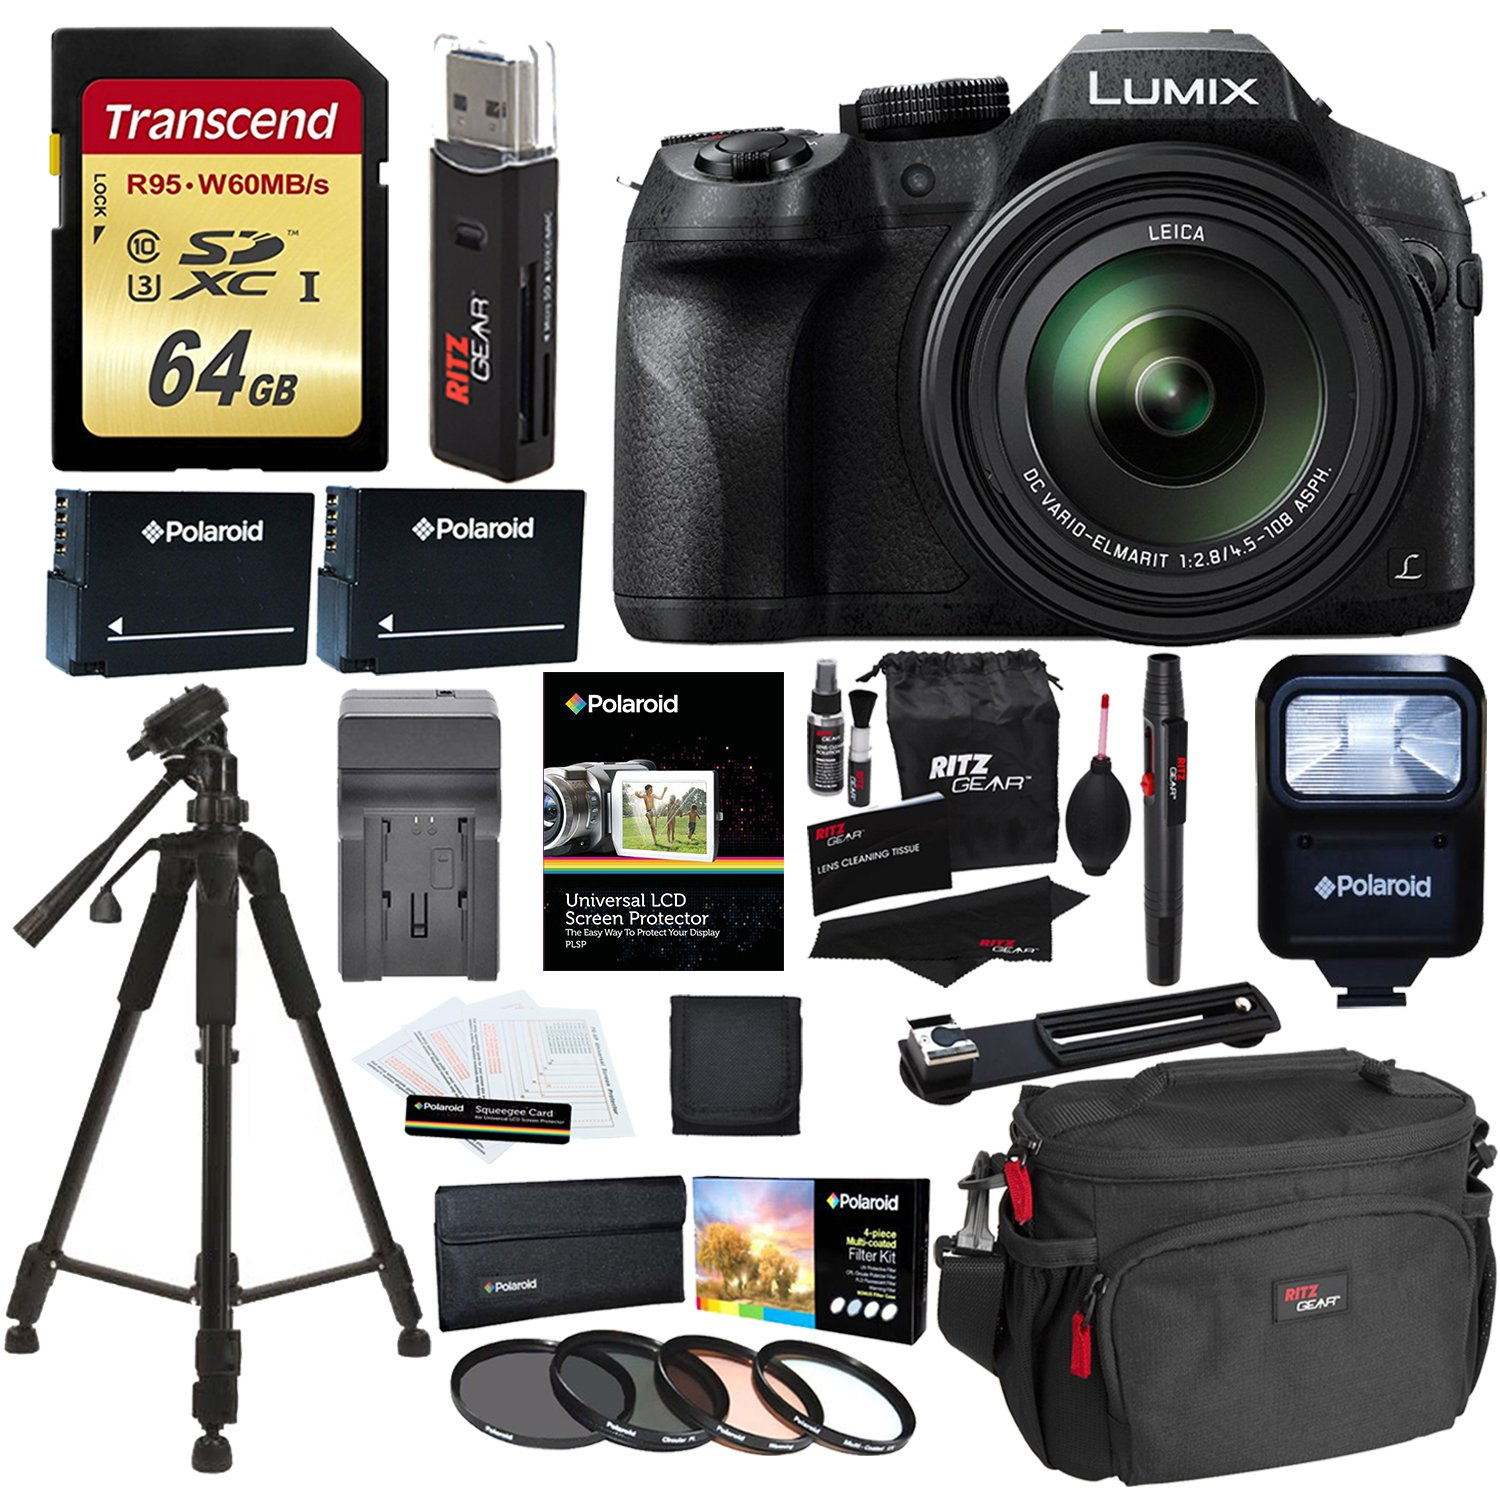 Panasonic LUMIX DMC FZ300 4K Point and Shoot Camera with Leica DC Lens 24X Zoom Black + Polaroid Accessories + 64GB SD Card + 57'' Tripod + Ritz Gear Bag + 2 Batteries + Charger + Filter + Cleaning Kit by Ritz Camera (Image #1)